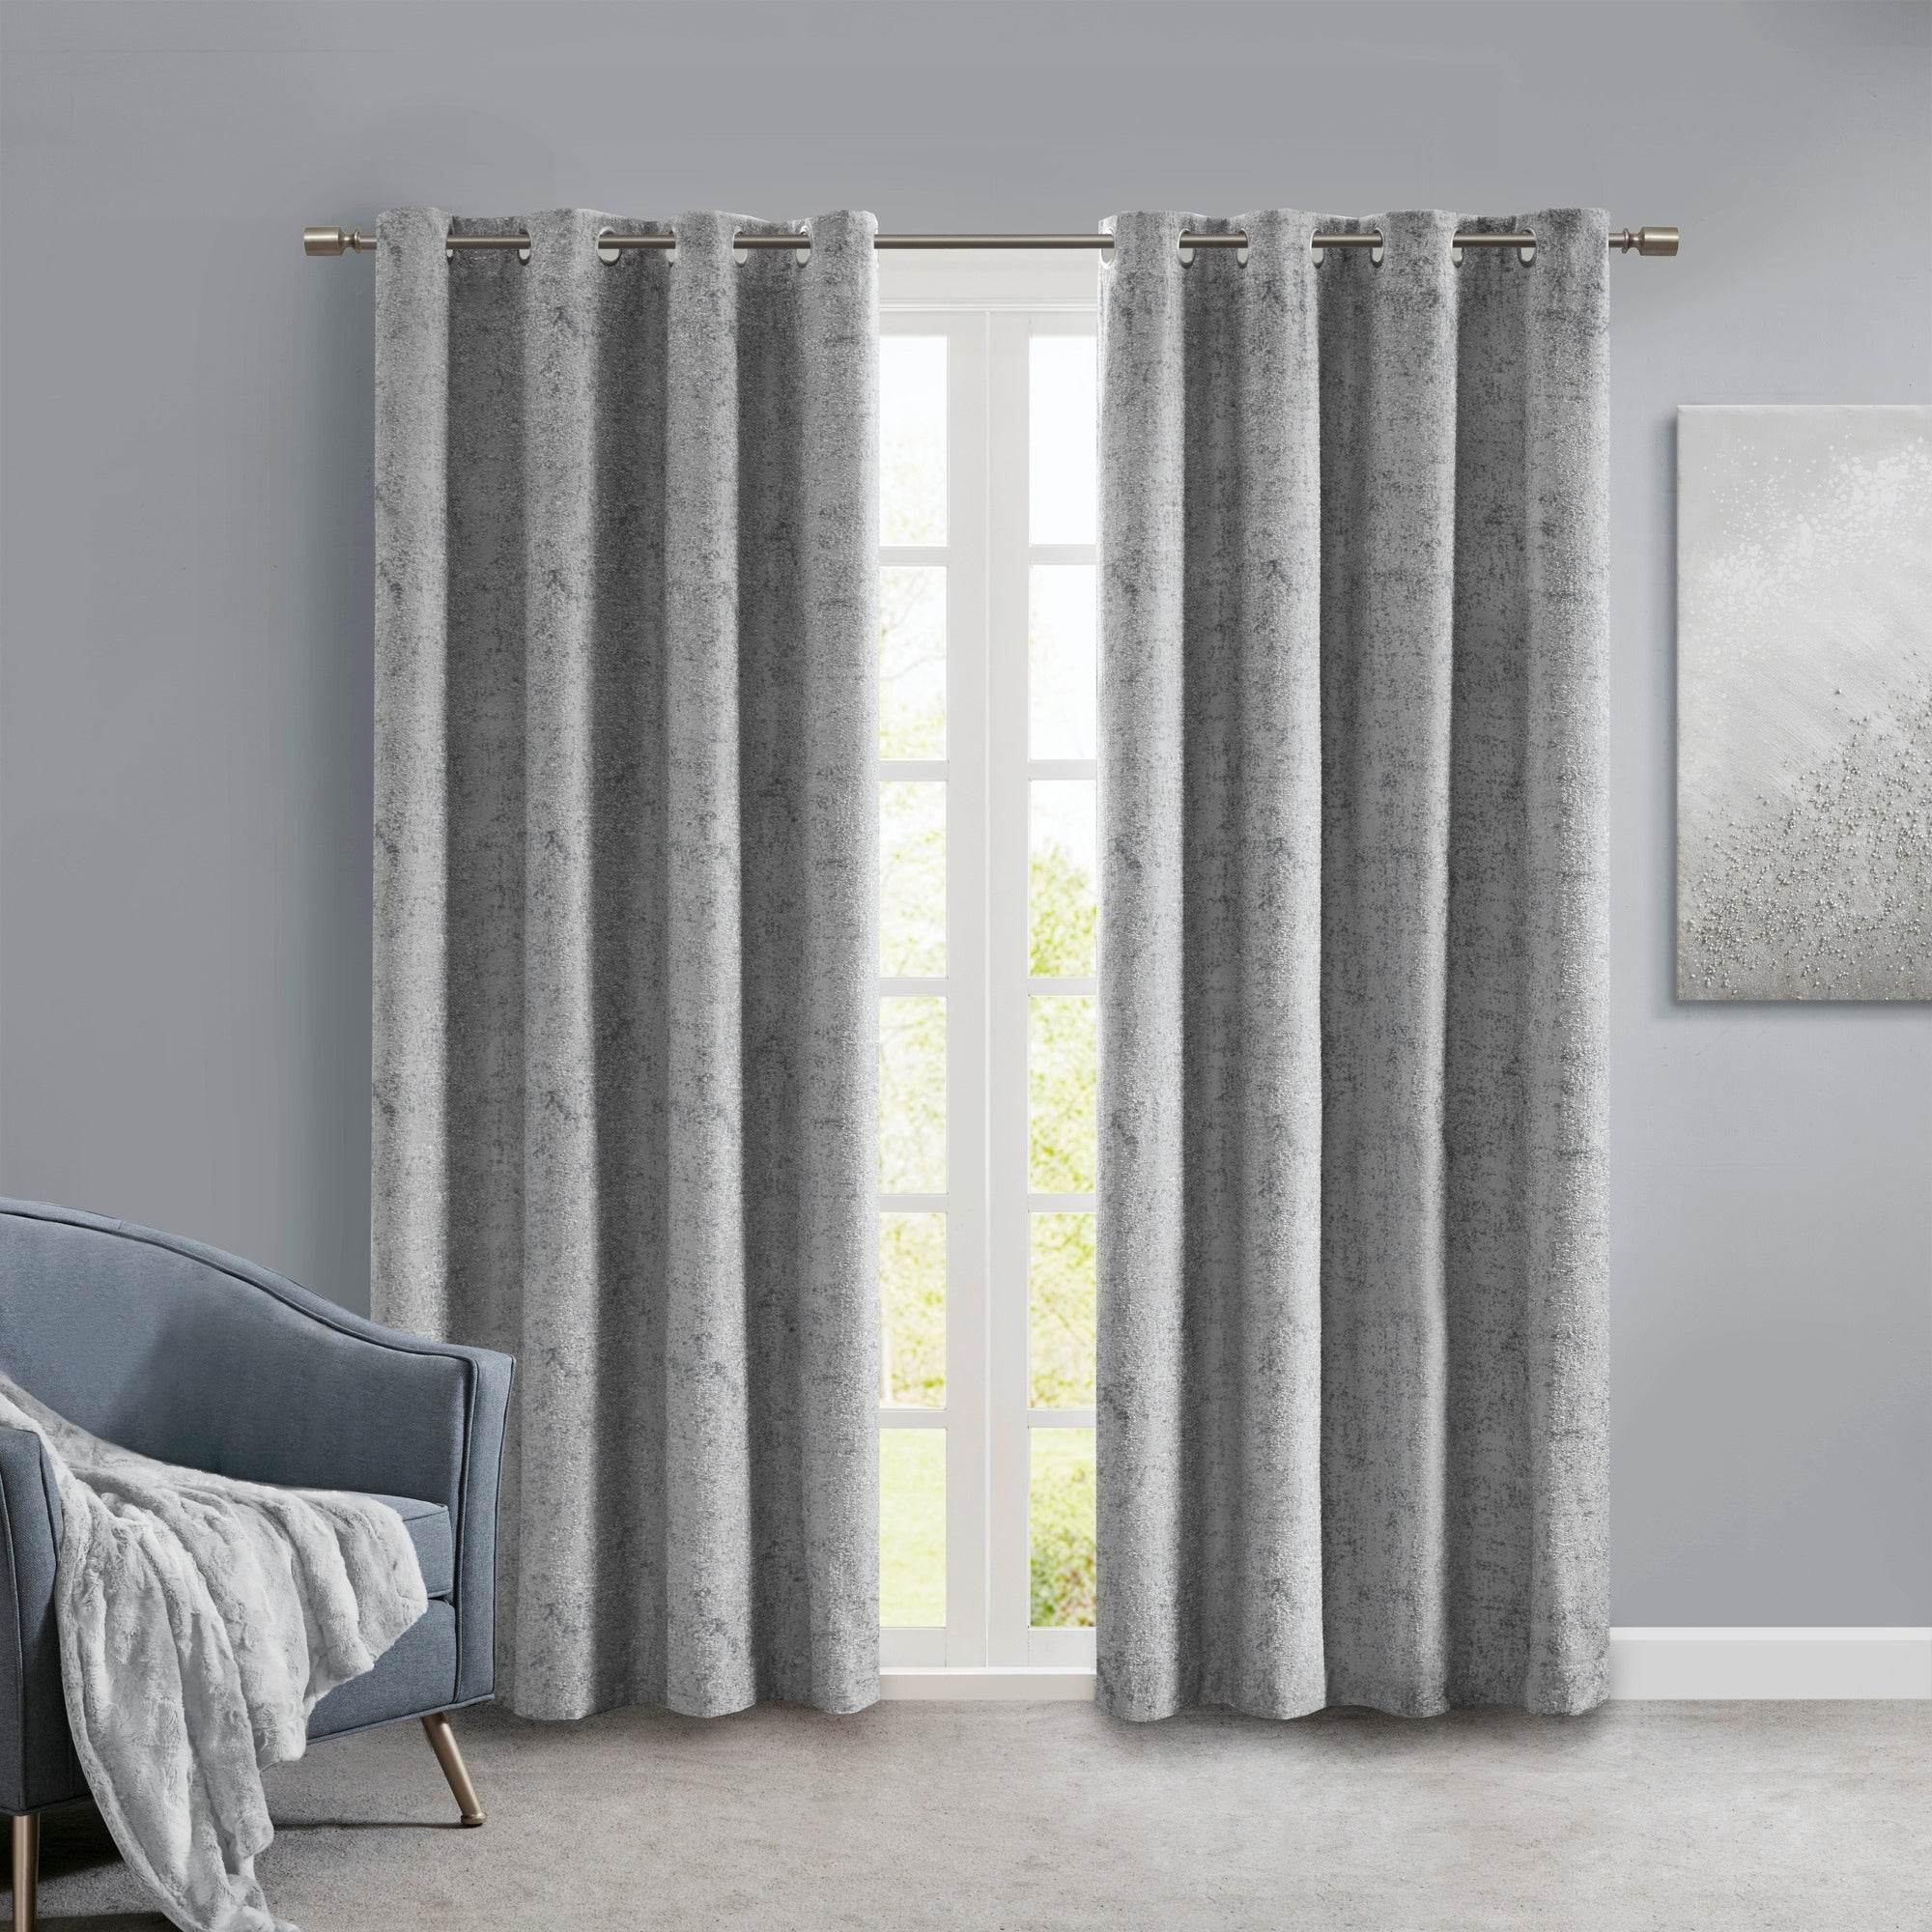 2020 Sunsmart Stella Knitted Jacquard Marble Total Blackout Panel Pertaining To Sunsmart Abel Ogee Knitted Jacquard Total Blackout Curtain Panels (View 20 of 20)